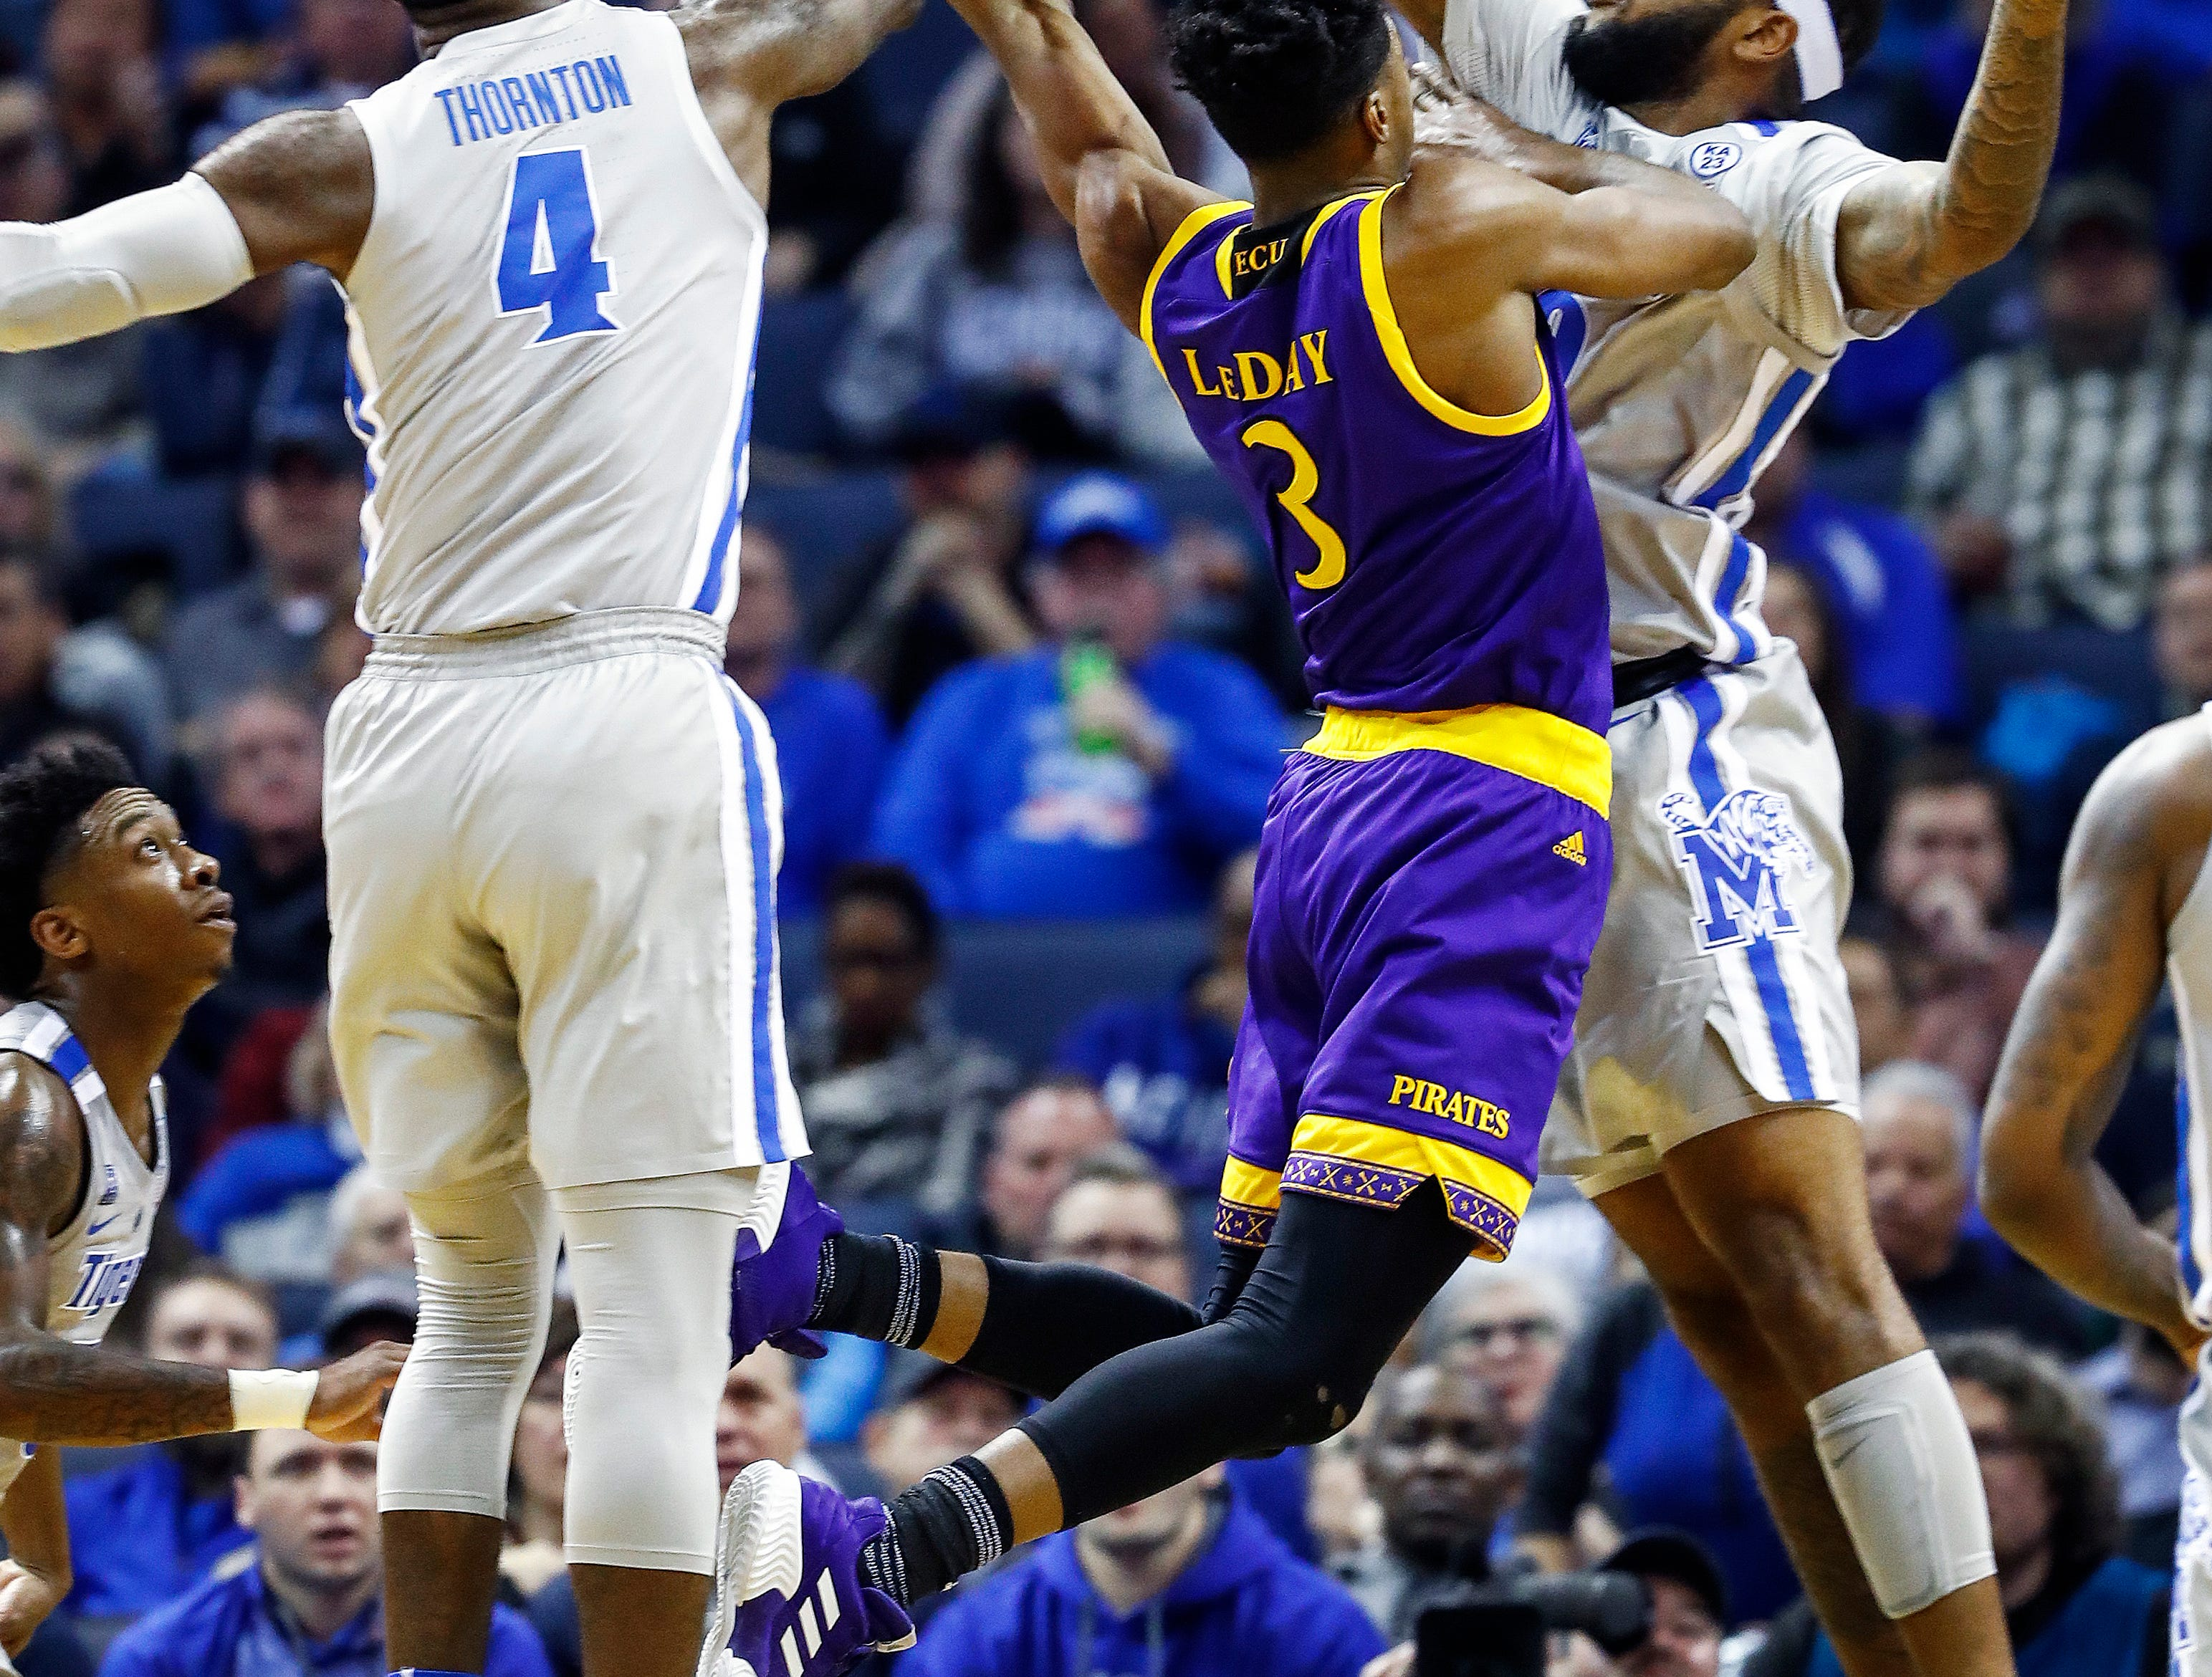 Memphis defenders Raynere Thornton (left) and Mike Park Sr. apply defensive pressure to the shot of ECU forward Seth LeDay (middle) during action at the FedExForum, Thursday, January 10, 2019.